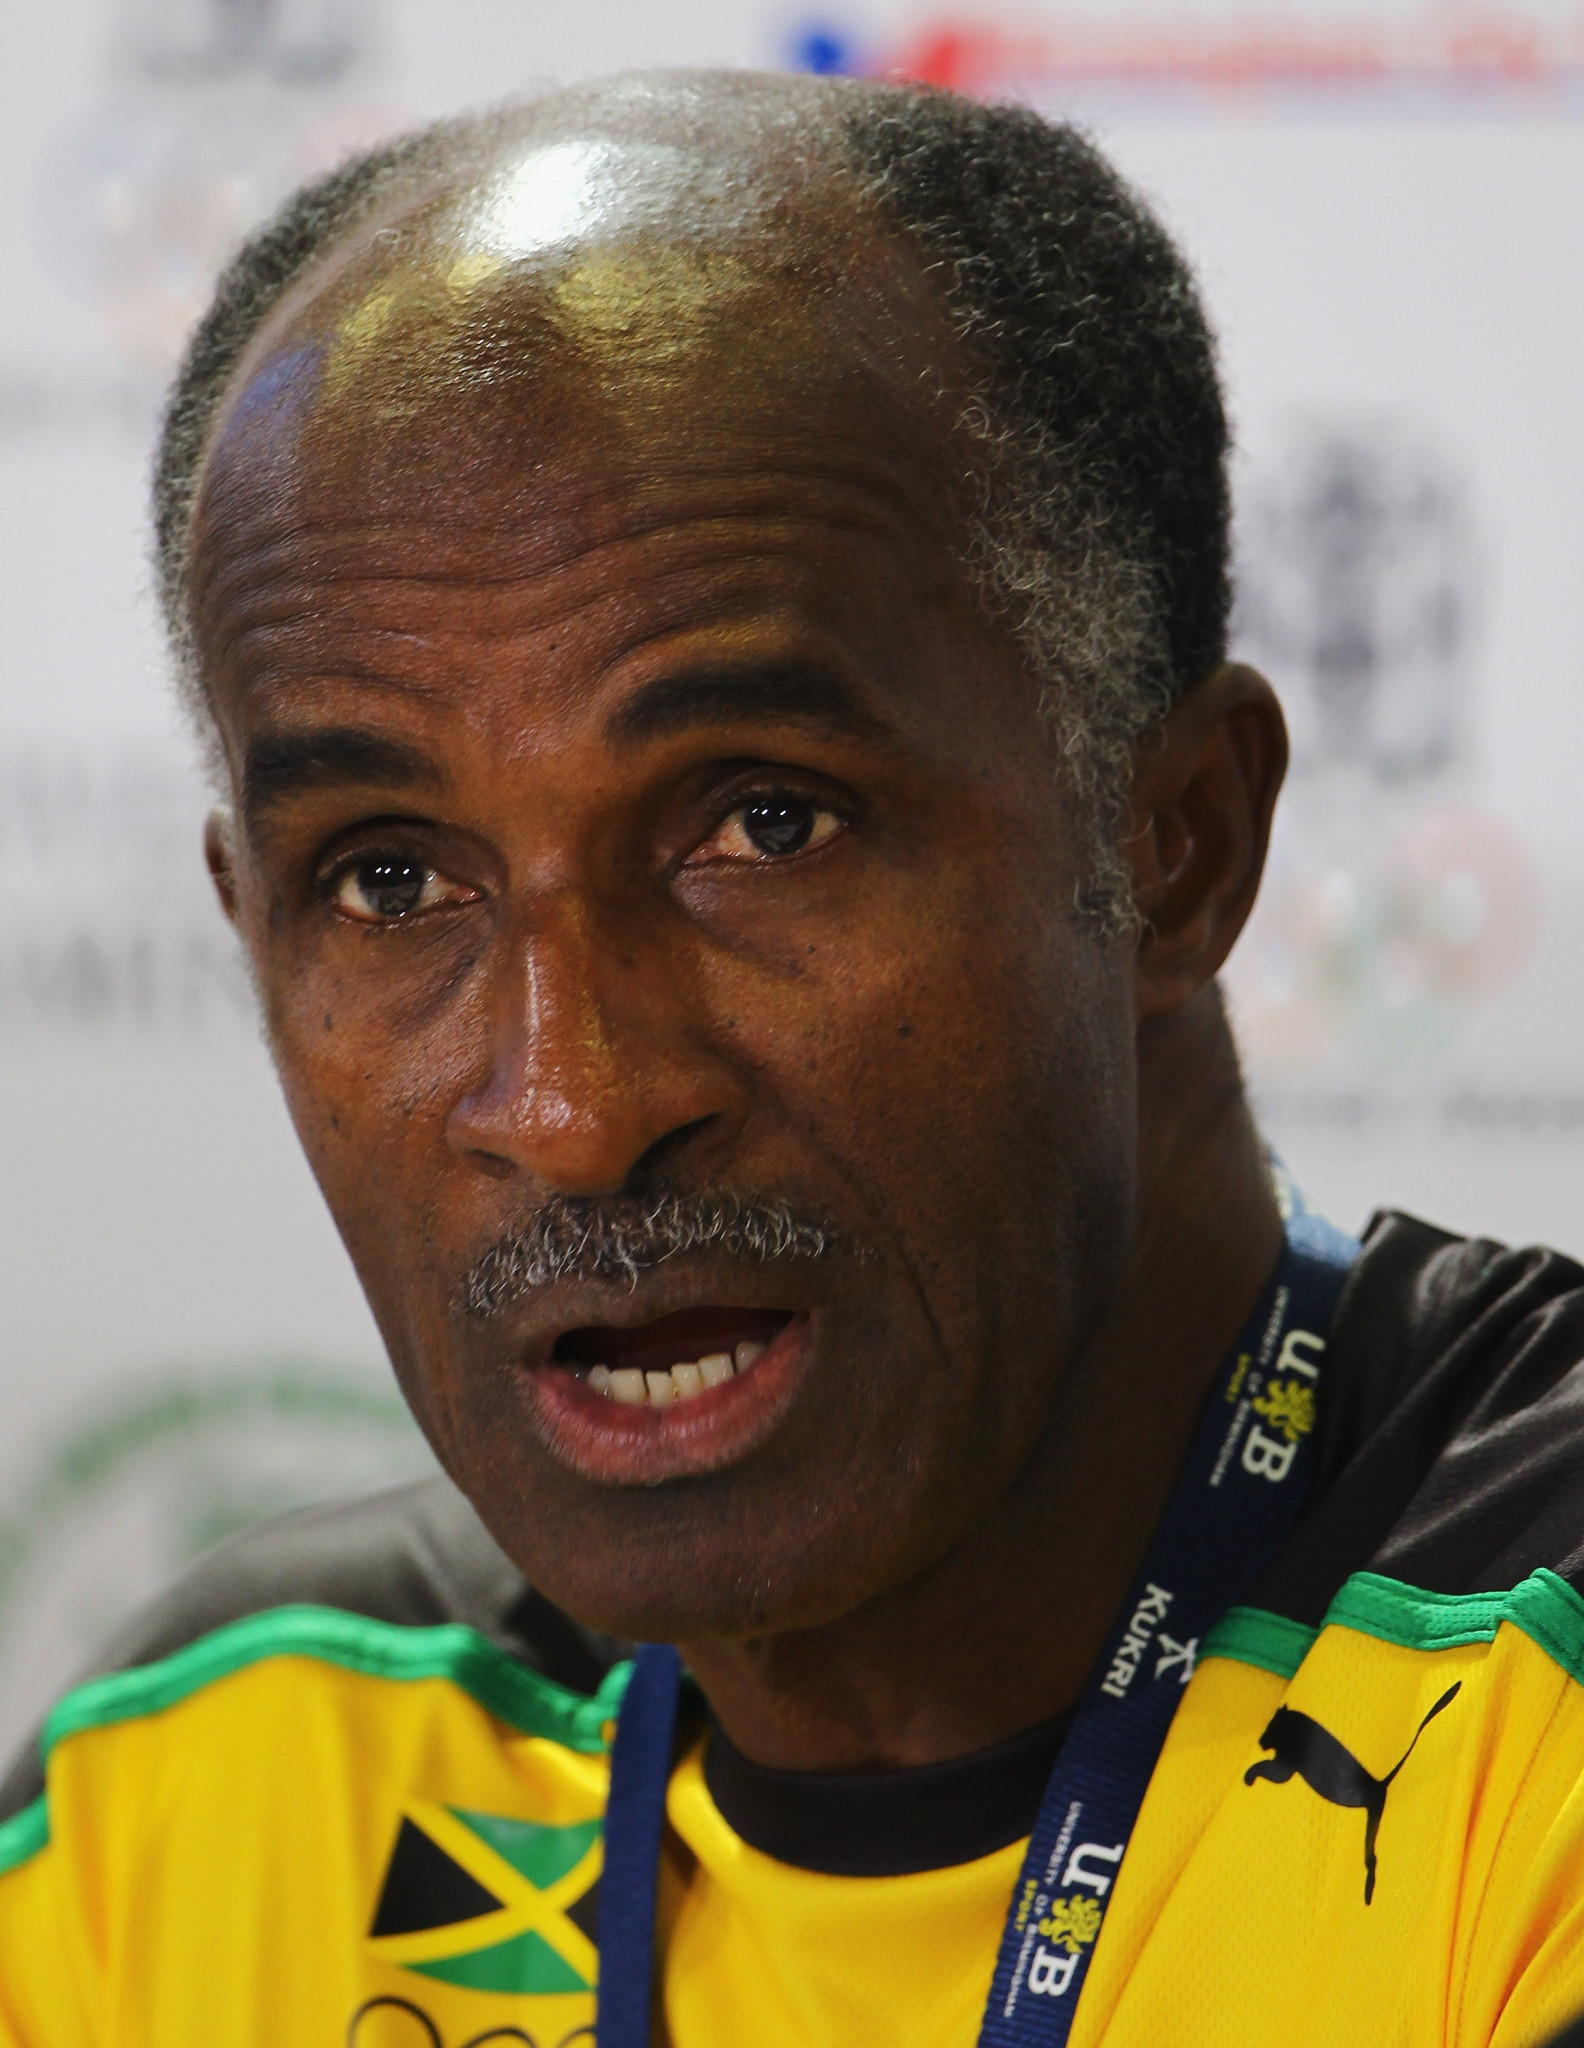 Olympic gold medallist Quarrie seeking election as President of JAAA